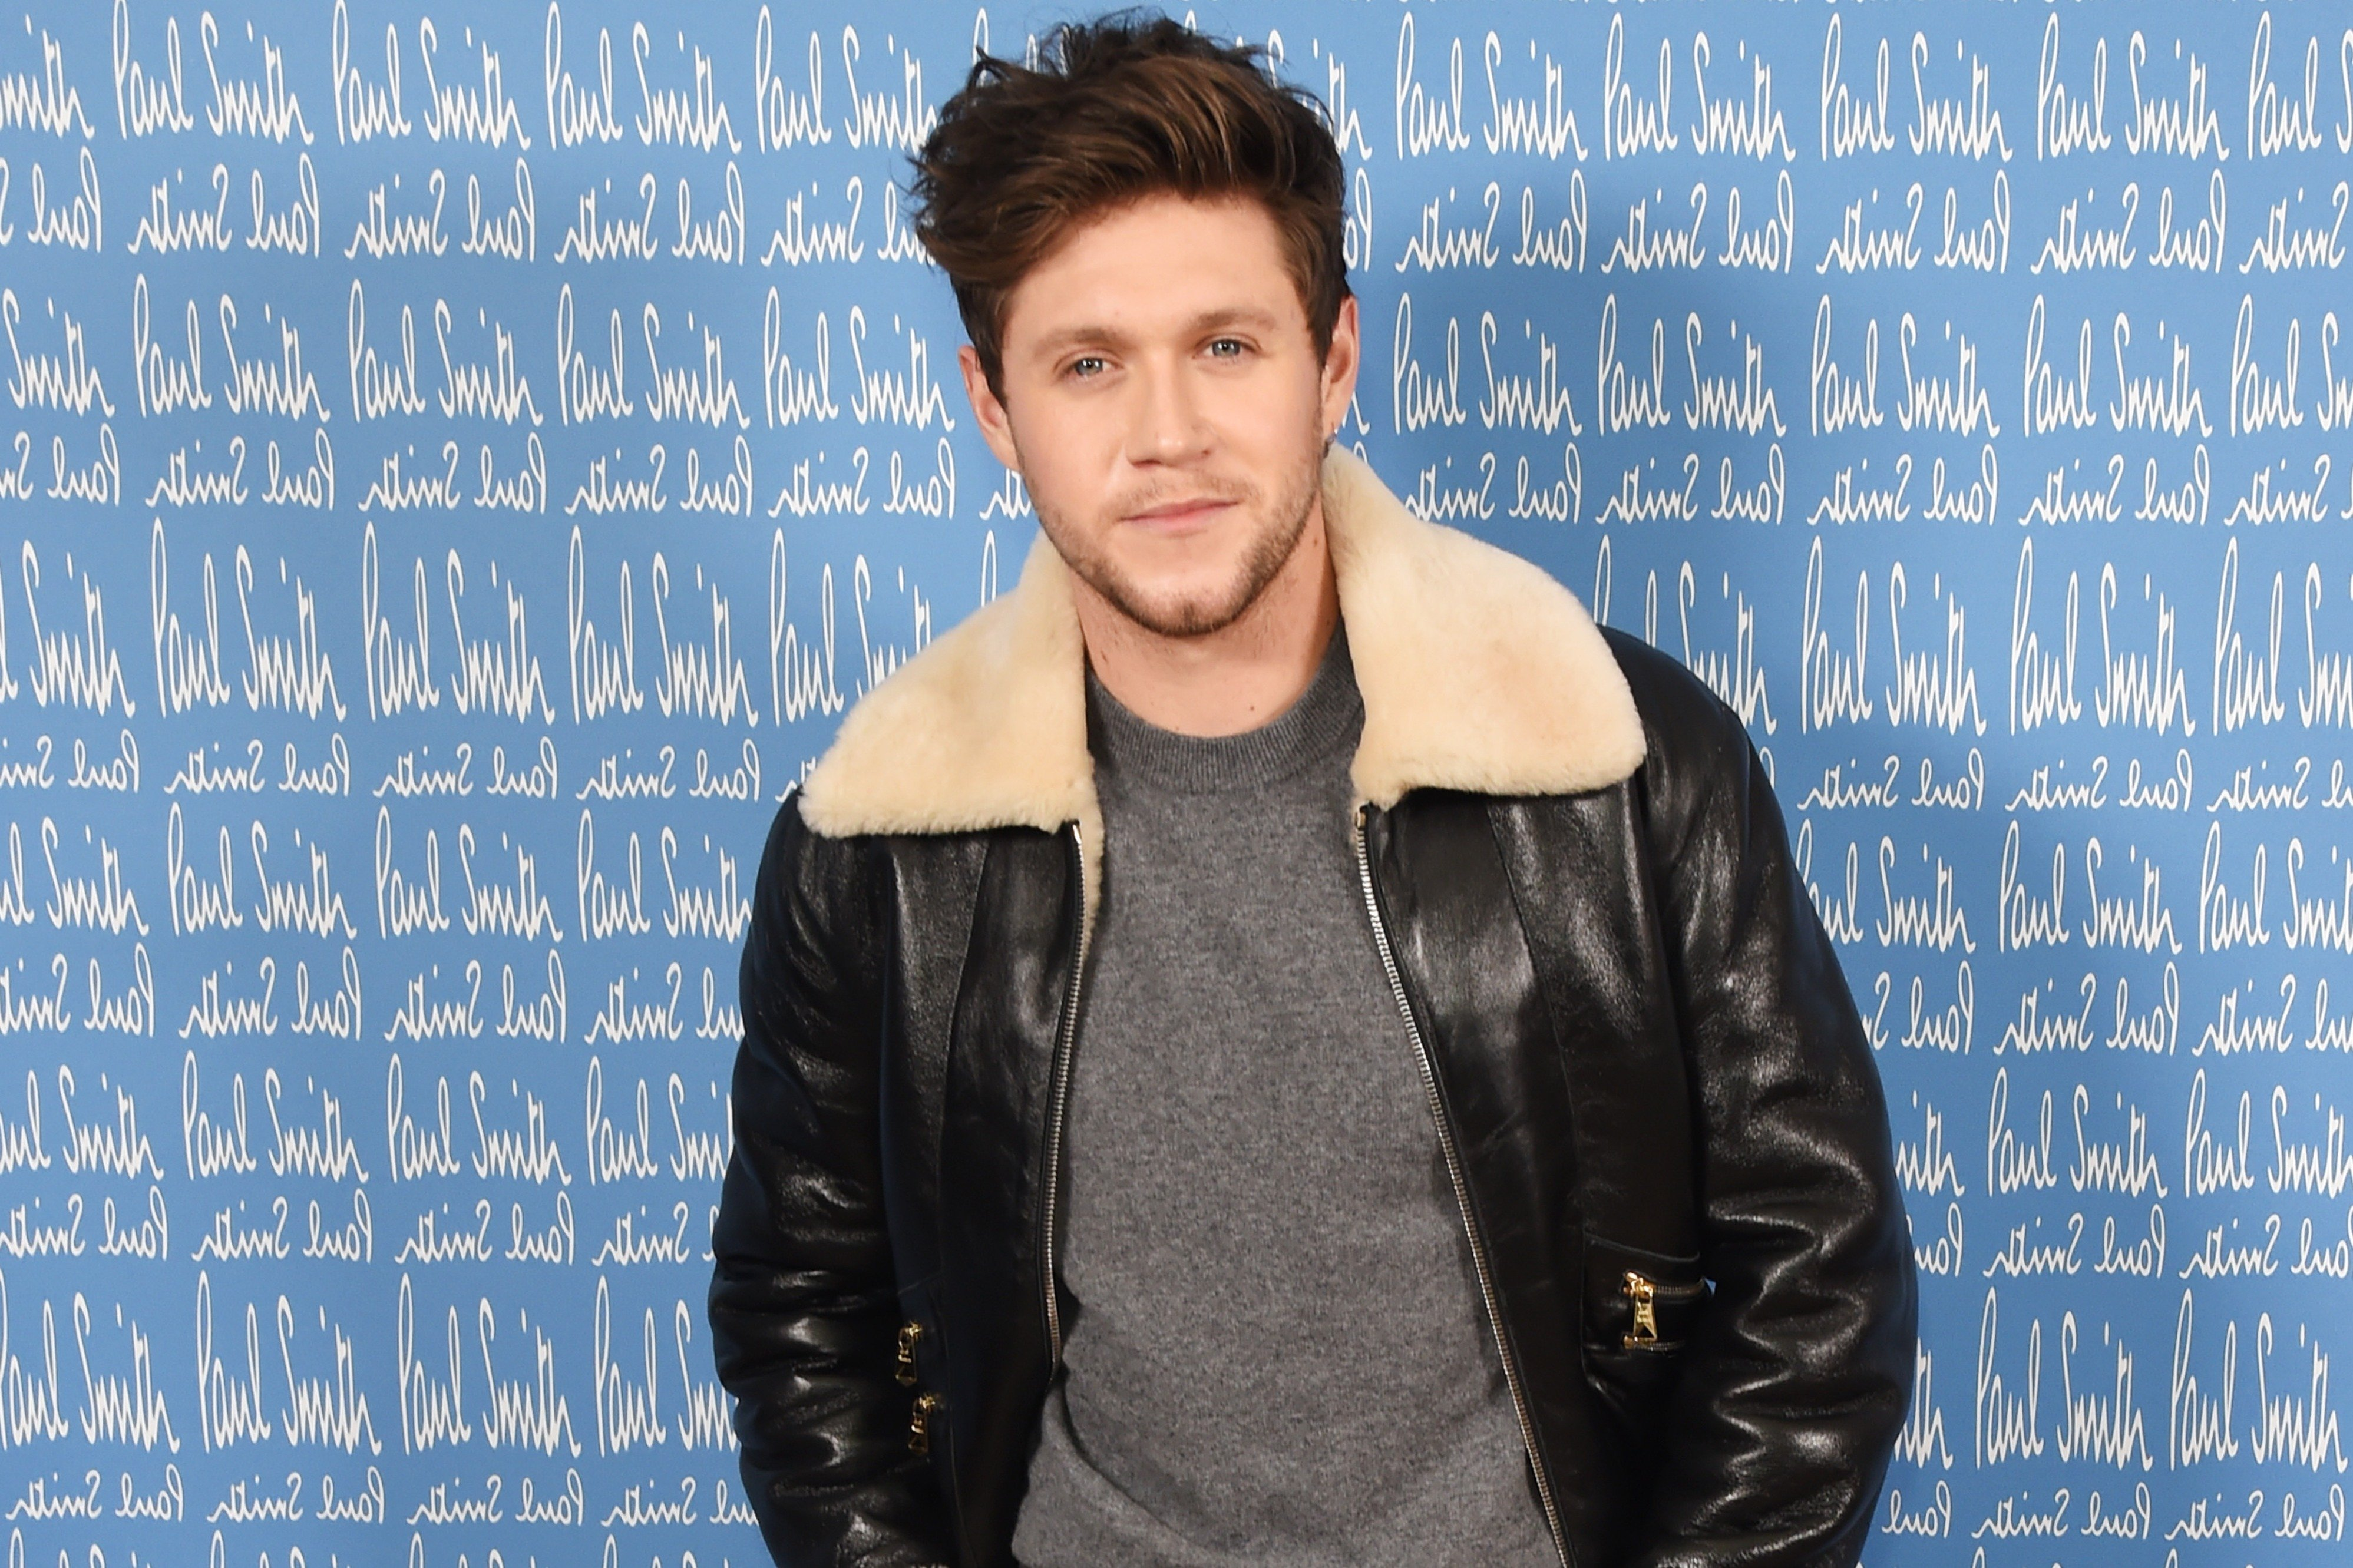 Image Credit: Getty Images/Getty Images for Paul Smith/David M. Benett/Dave Benett   Niall Horan attends the Paul Smith AW20 50th Anniversary show